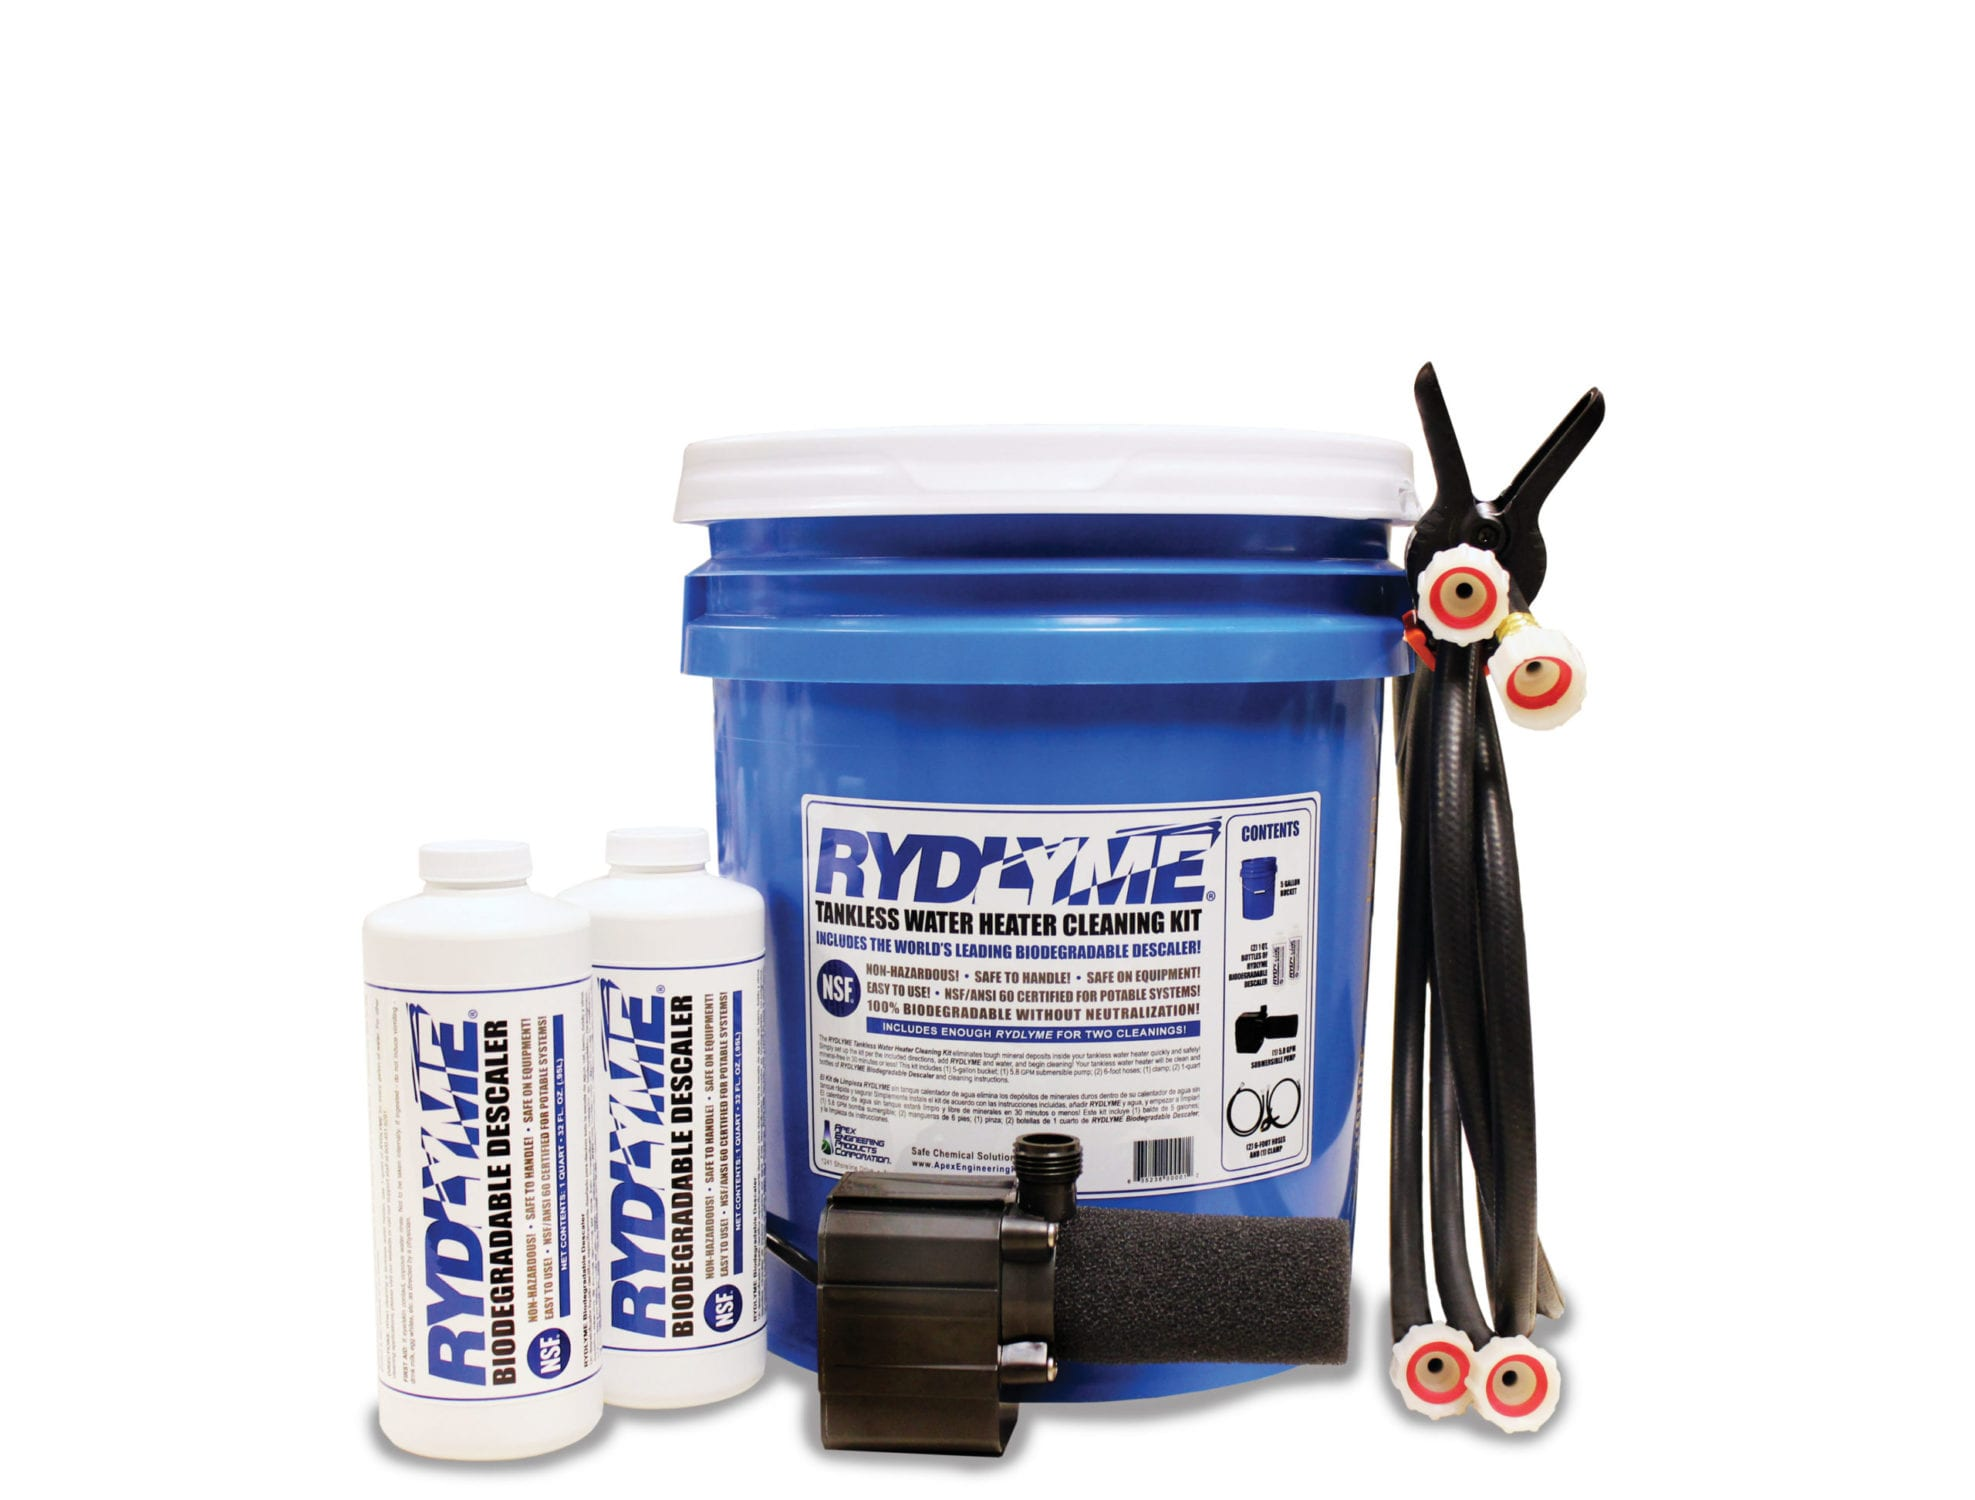 Tankless Hot-Water Descaling Kit. Image of the kit and it's contents.